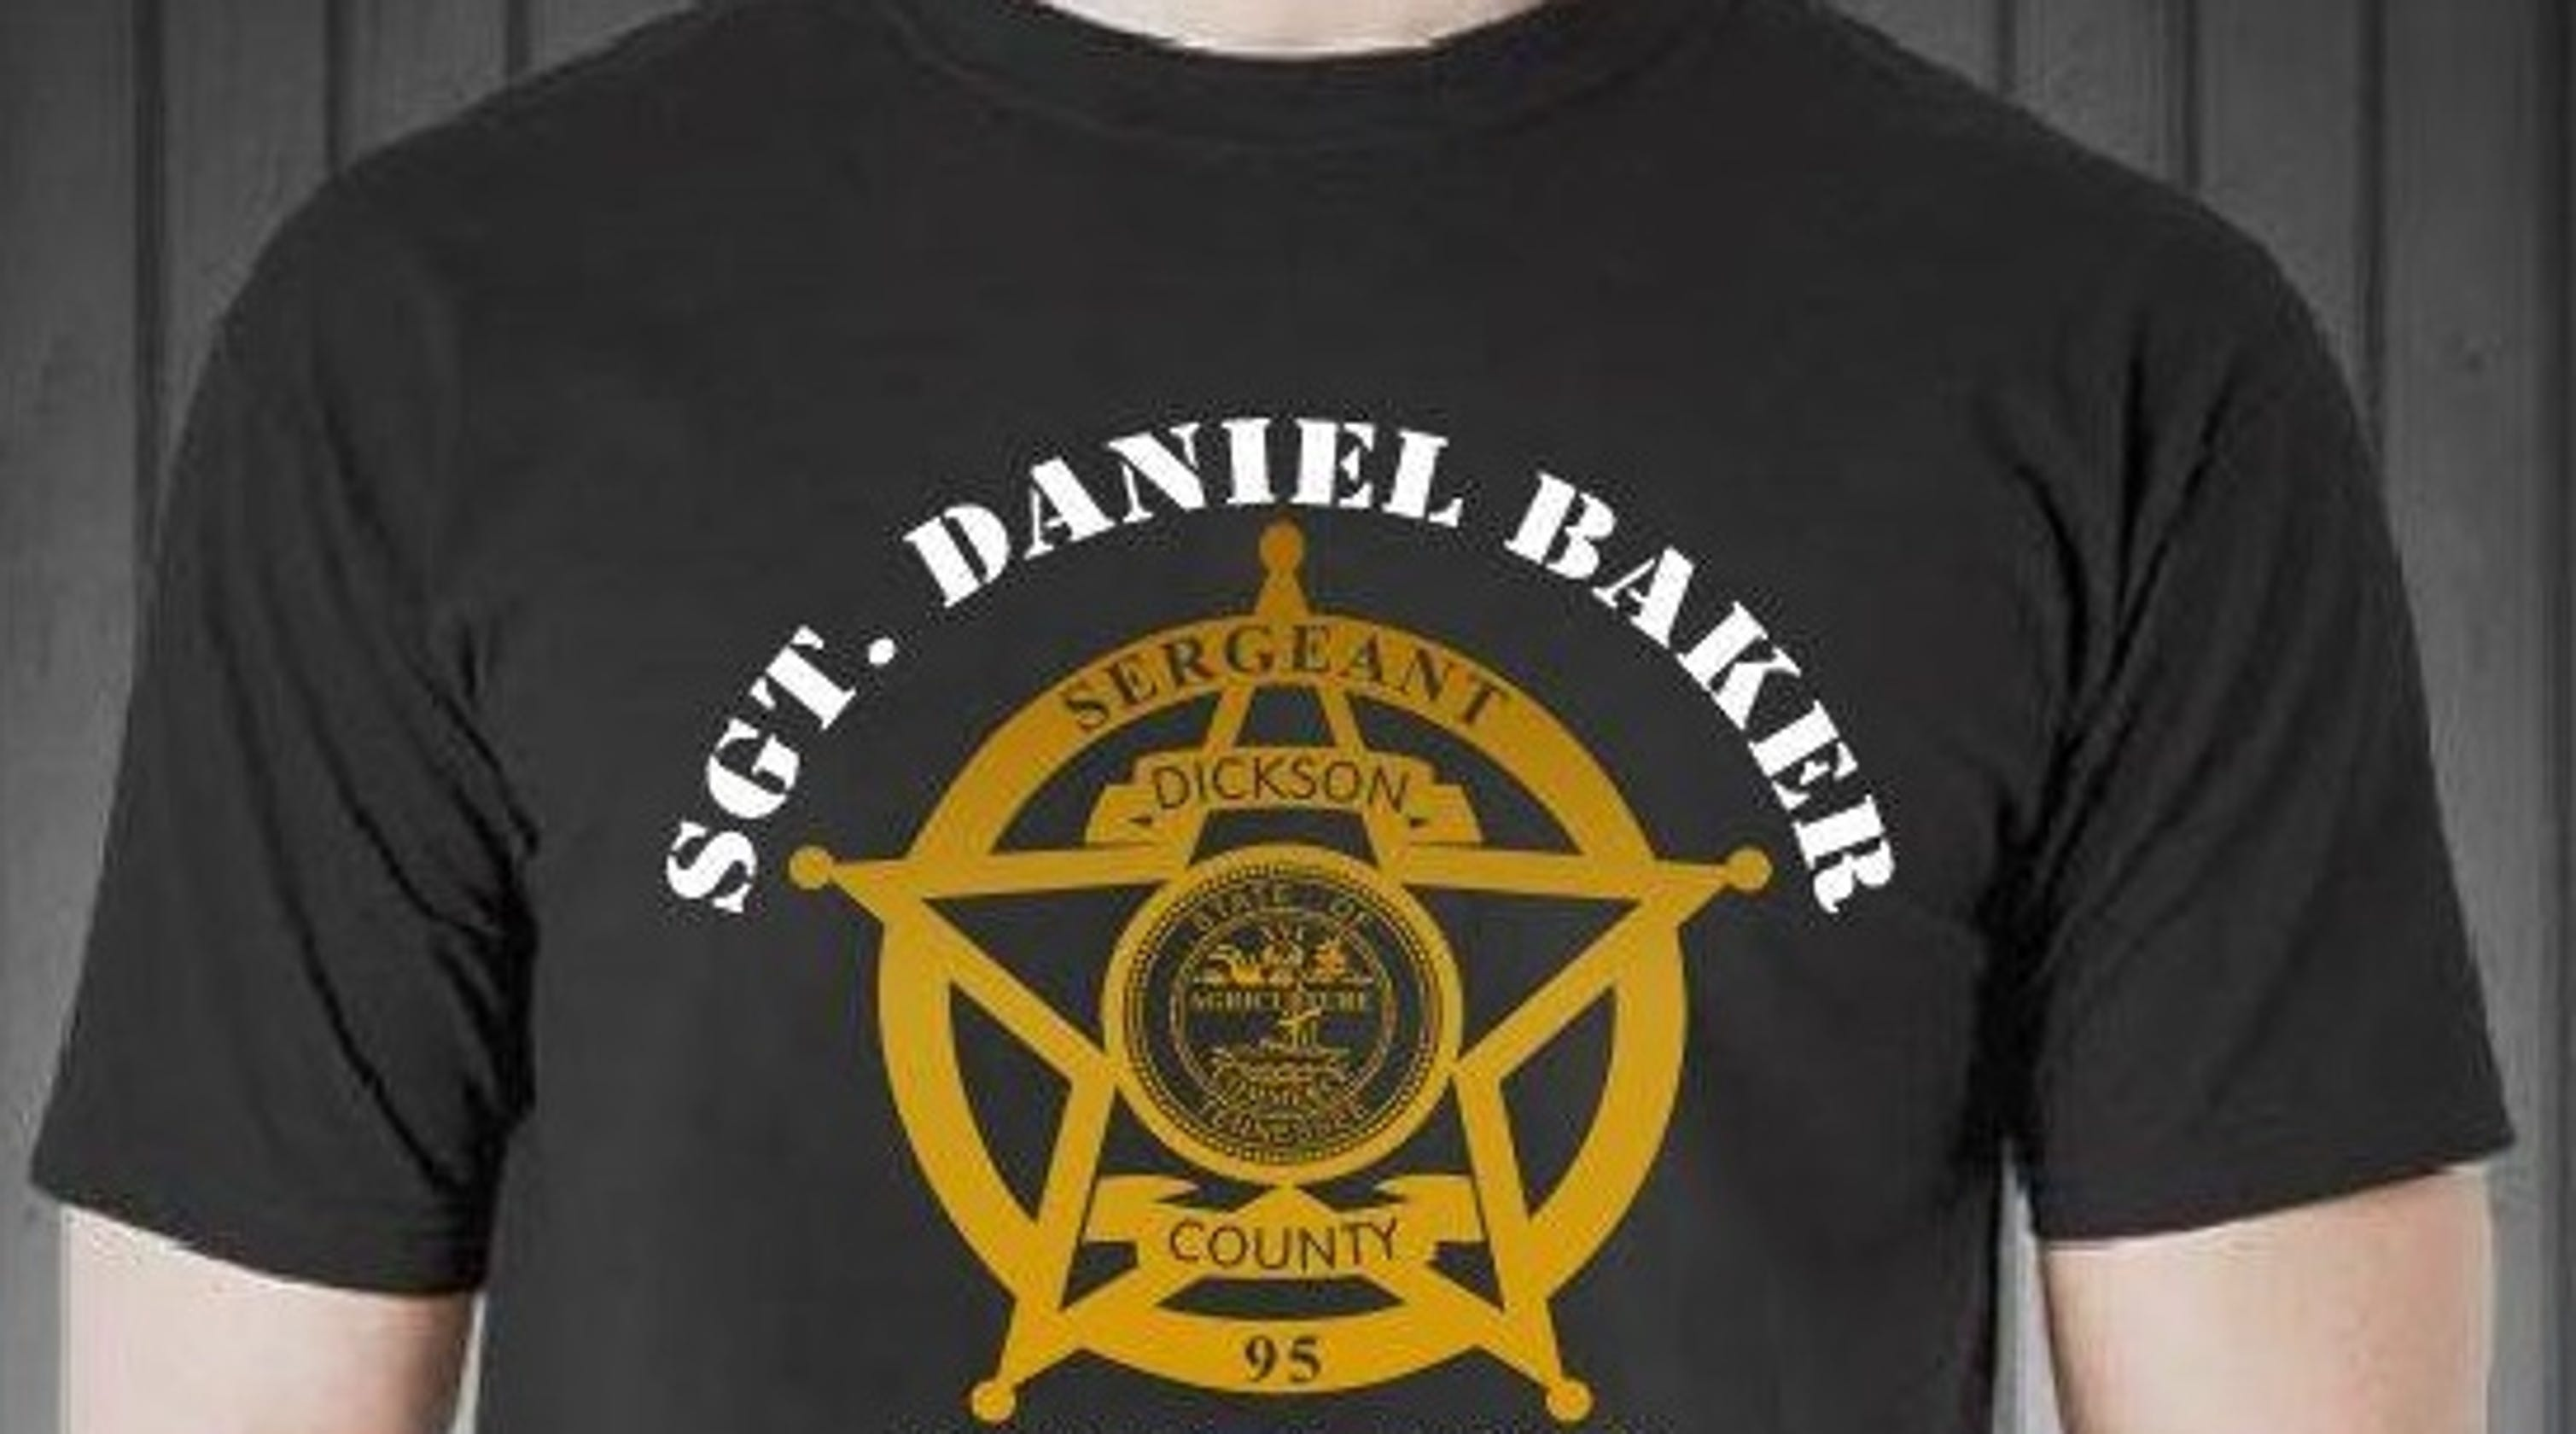 Sgt  Baker, a year later: Memorial event, badge T-shirts to